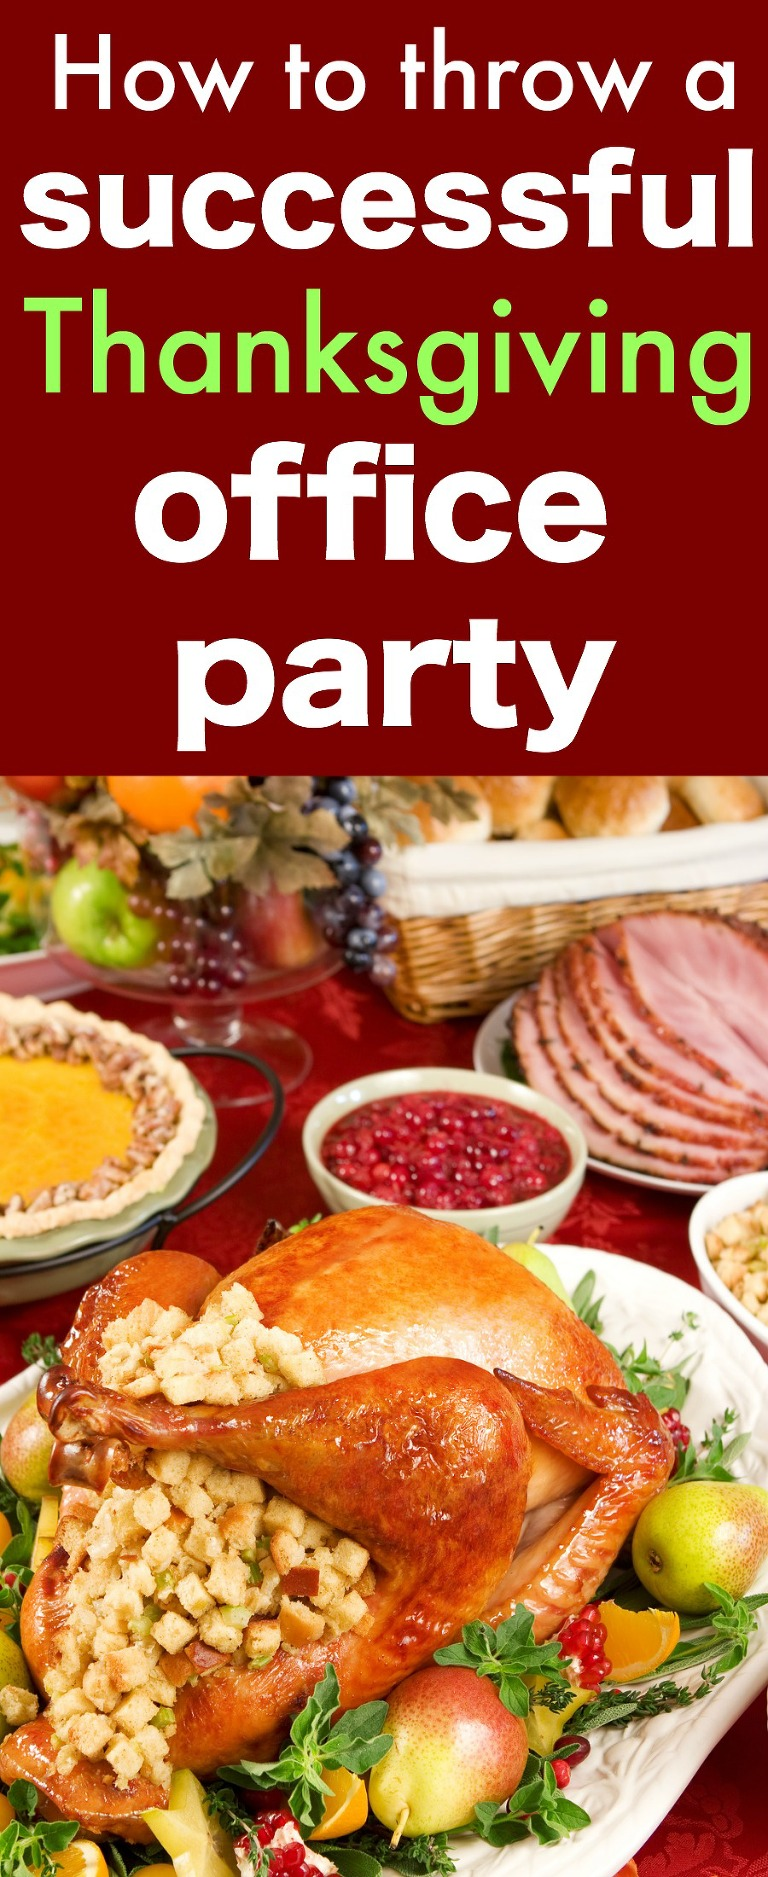 How to throw a successful thanksgiving office party